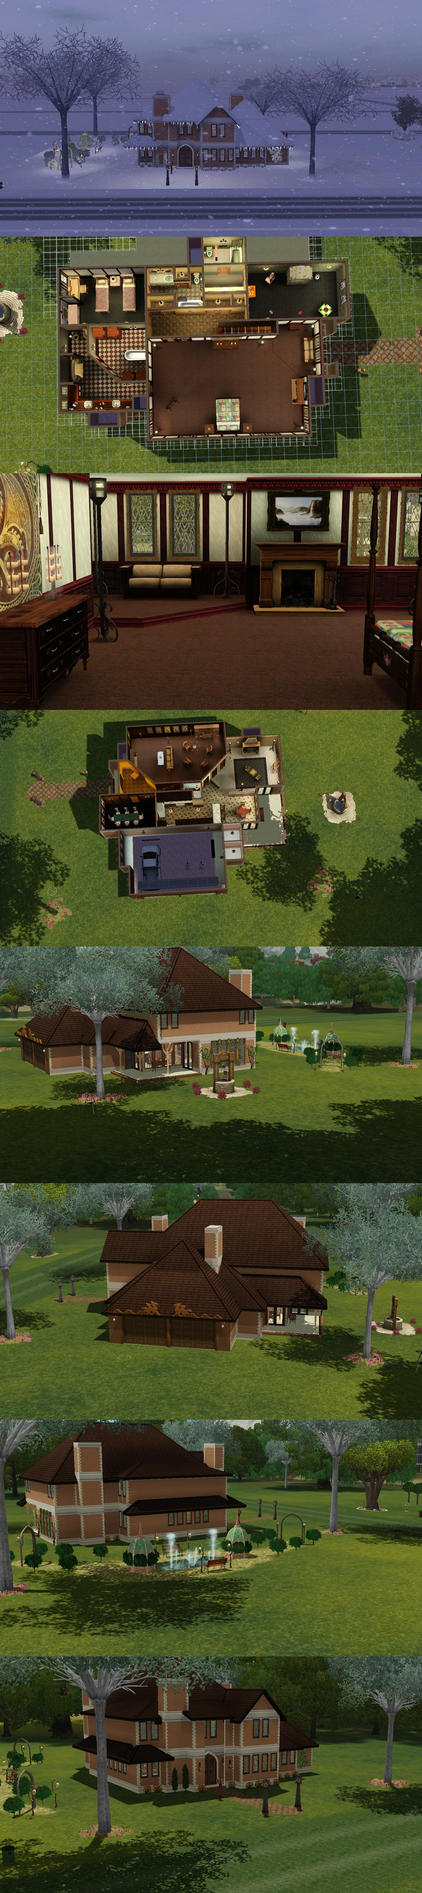 Sims 3: Dragon Valley Tudor 1 by PrlUnicorn